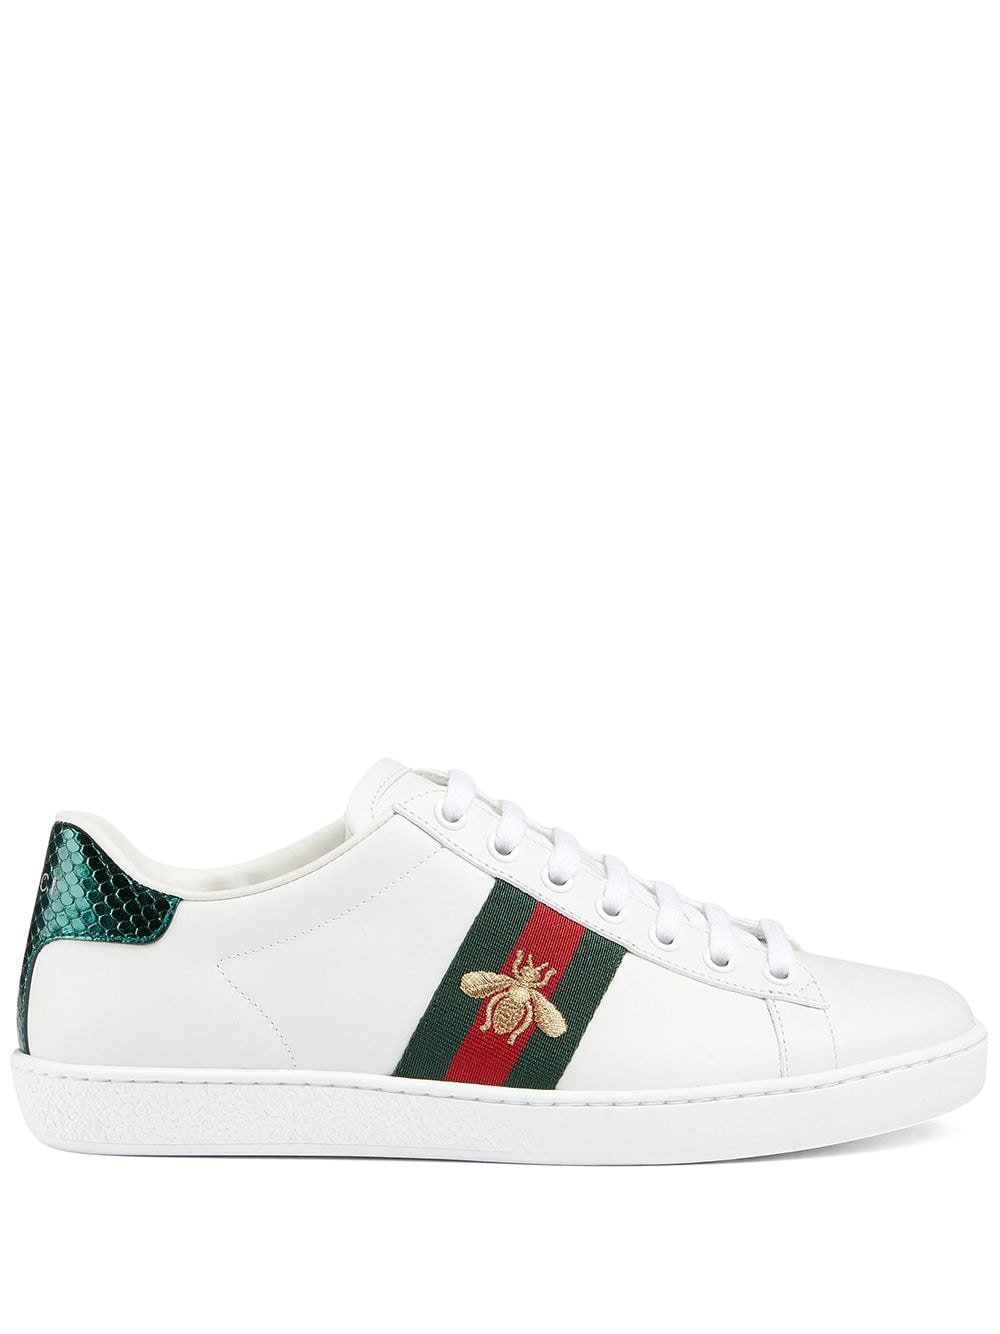 Embroidered Ace Sneakers - White